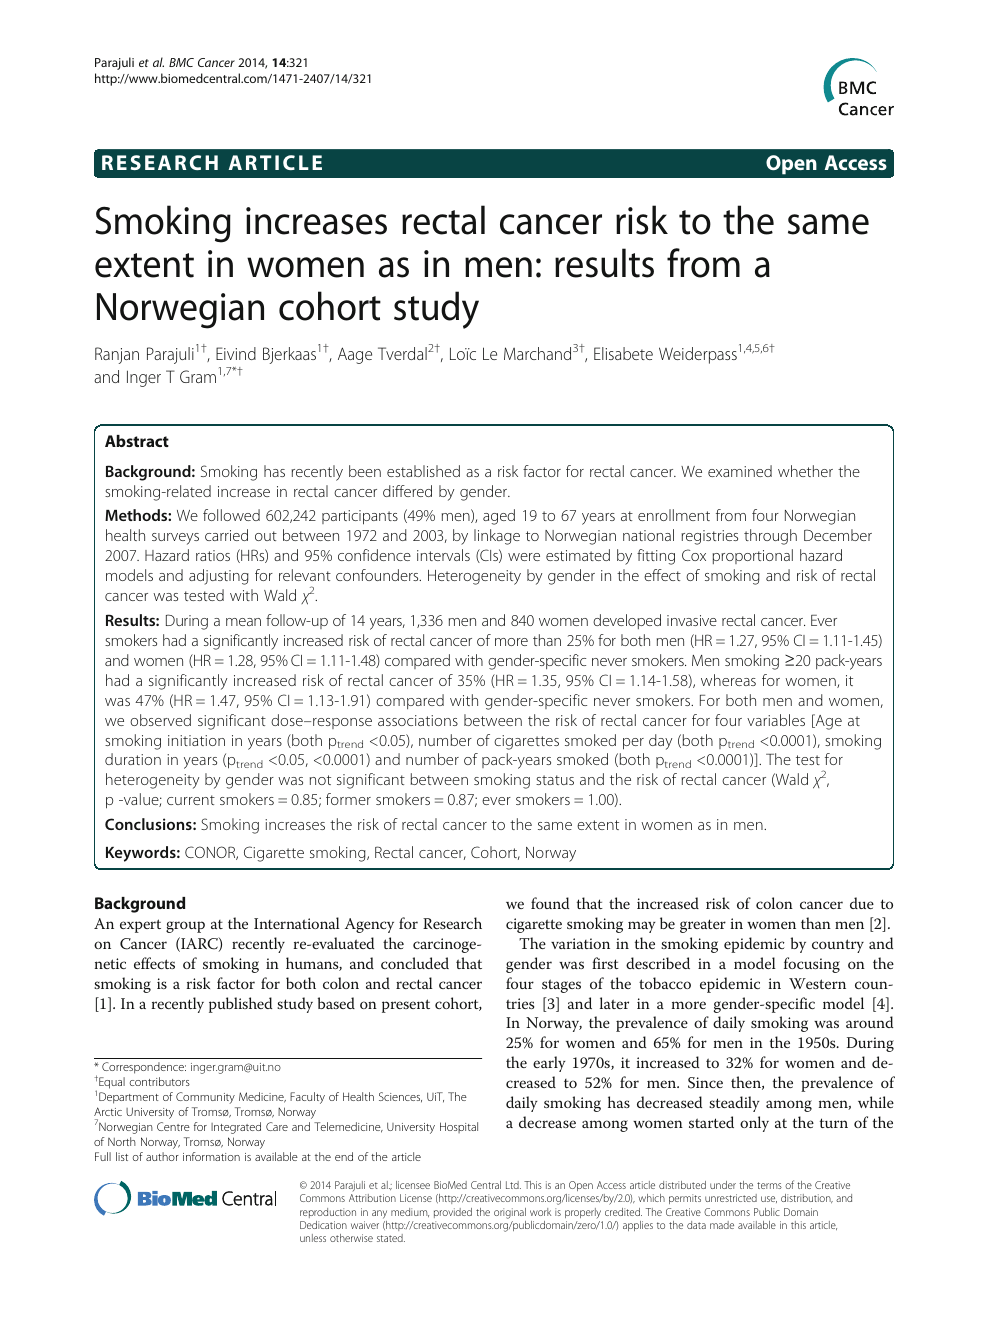 Smoking Increases Rectal Cancer Risk To The Same Extent In Women As In Men Results From A Norwegian Cohort Study Topic Of Research Paper In Health Sciences Download Scholarly Article Pdf